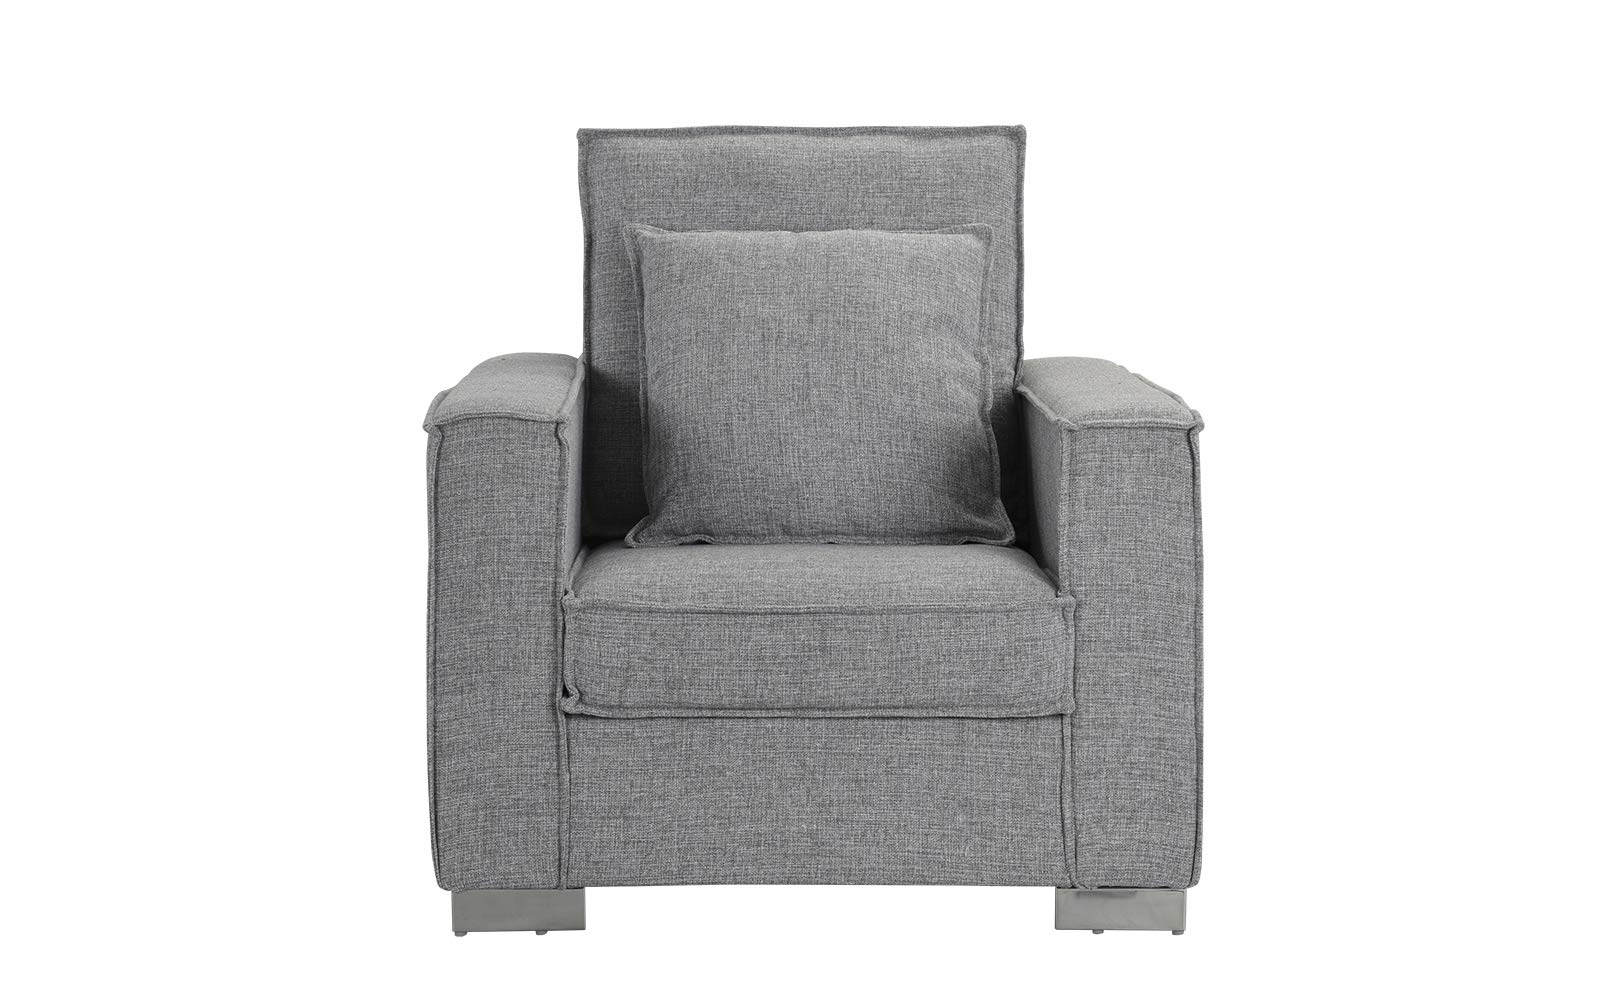 Living Room Large Linen Fabric Armchair, Living Room Accent Chair (Light Grey) - Club style chair with plenty of room for ultimate comfort and includes additional pillow. Upholstered in soft linen fabric with an exposed edge trim around frame and cushions. Low profile with a square shape and wide track arm rests, and features chrome L shape legs. - living-room-furniture, living-room, accent-chairs - 71vPo6KiFBL -